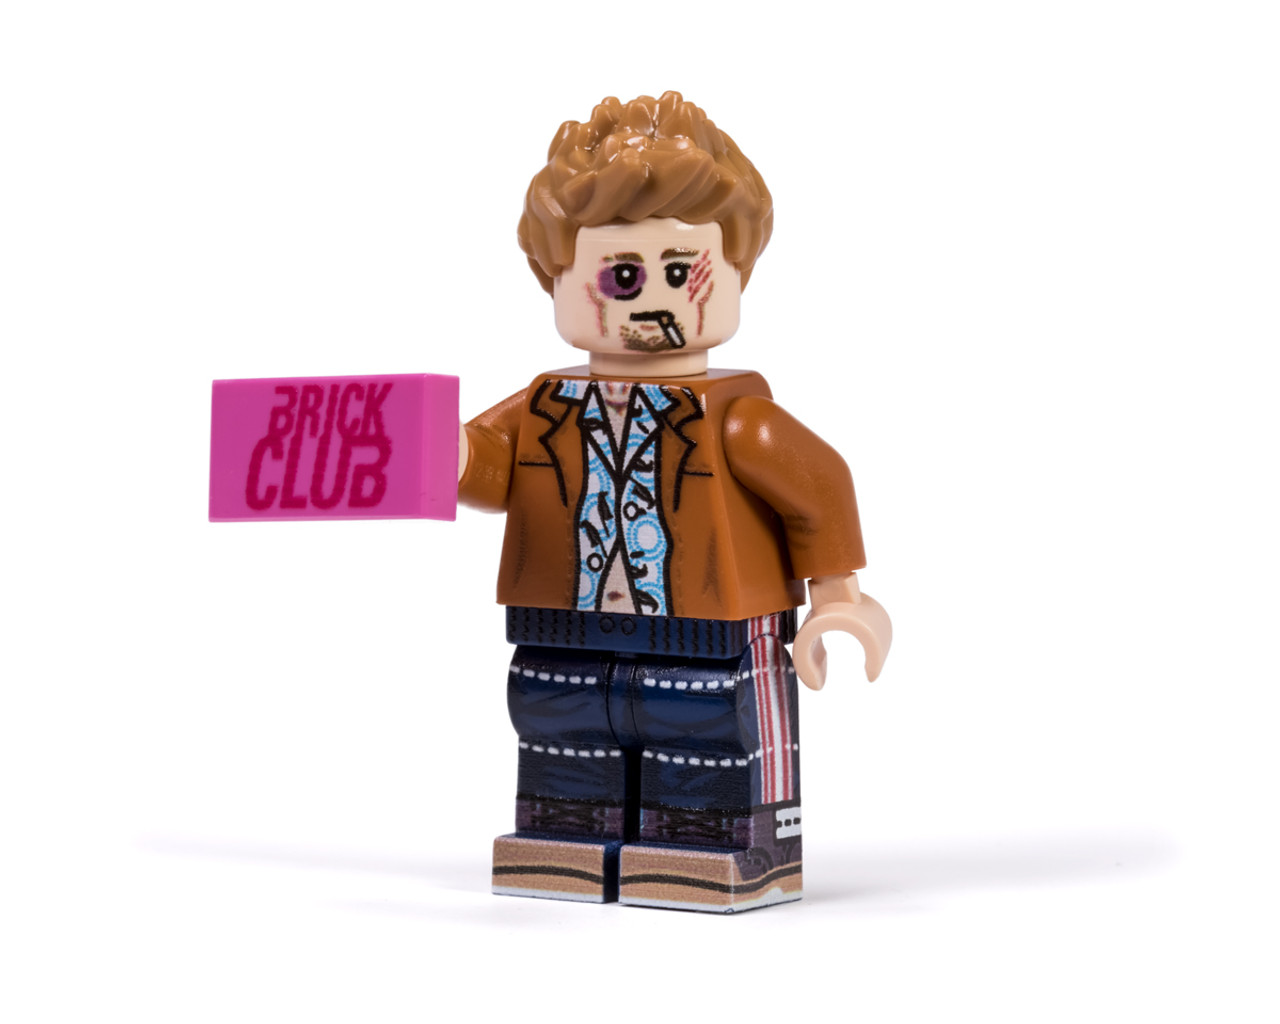 We do not talk about Brick Club